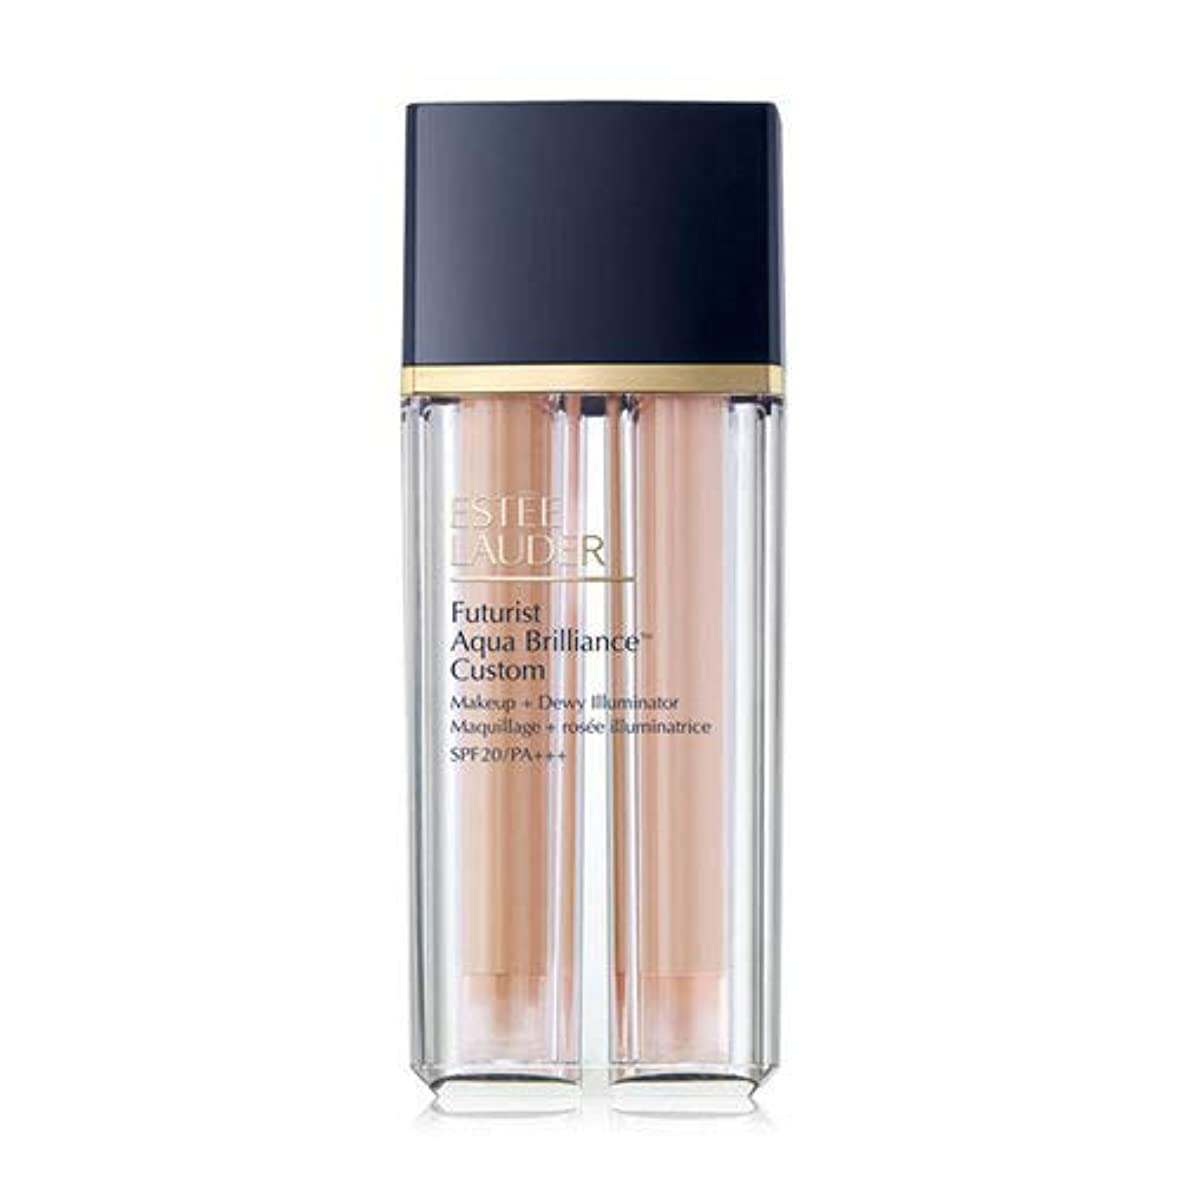 ペナルティ武器ワイドEstee Lauder(エスティローダー) Futurist Aqua Brilliance Custom Foundation & Illuminator Duo SPF20/PA+++ 15ml ×2EA #2CO...